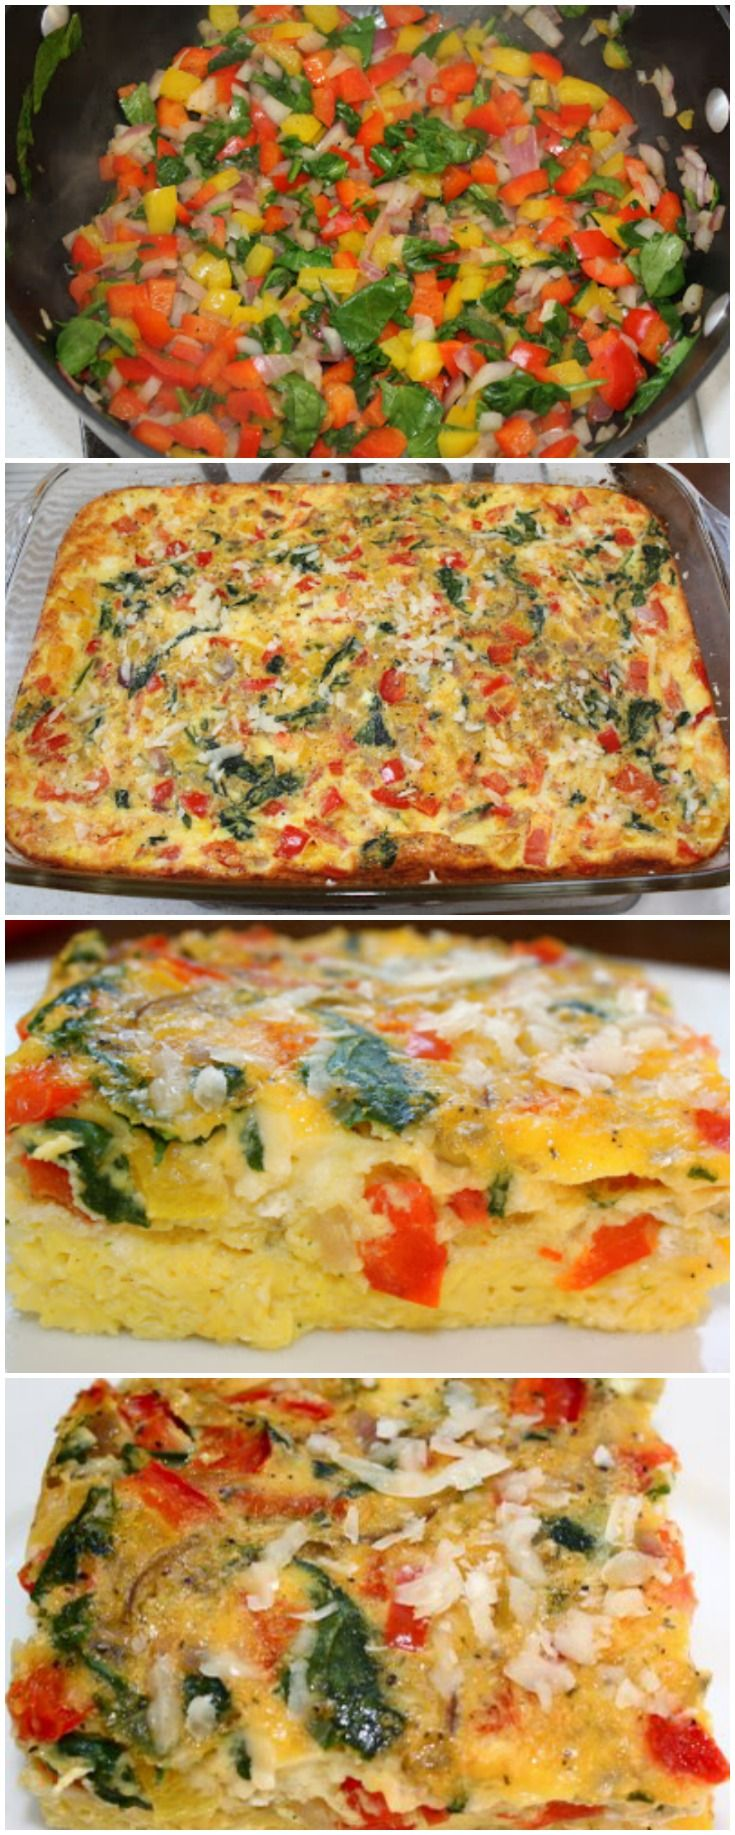 Egg Vegetable Casserole Recipe on twopeasandtheirpod.com Love this easy breakfast recipe! It feeds a crowd too!